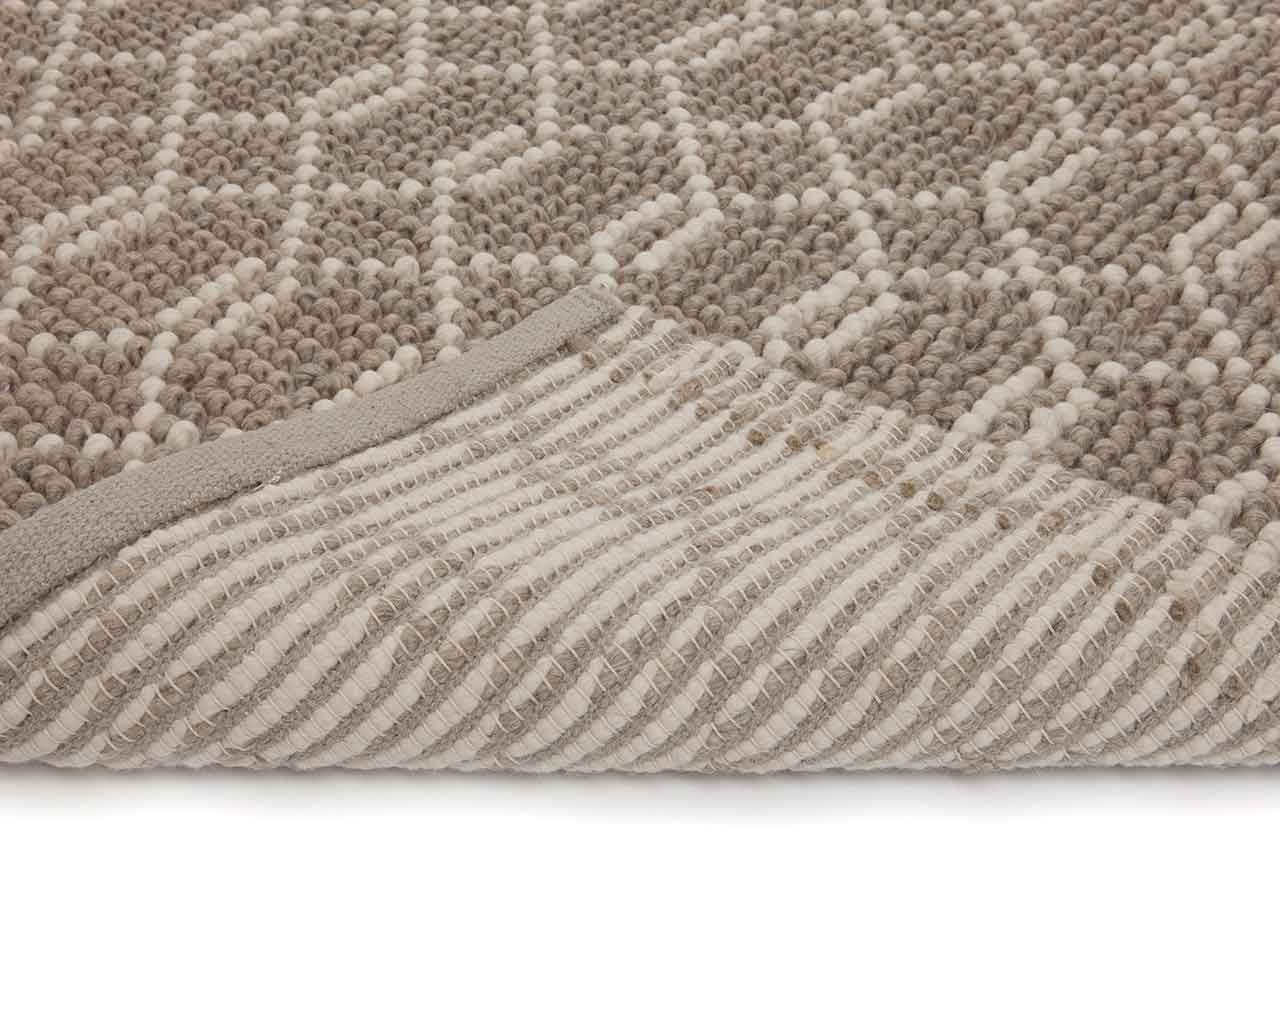 yarn textile folded carpet layer durable carpets from india 1